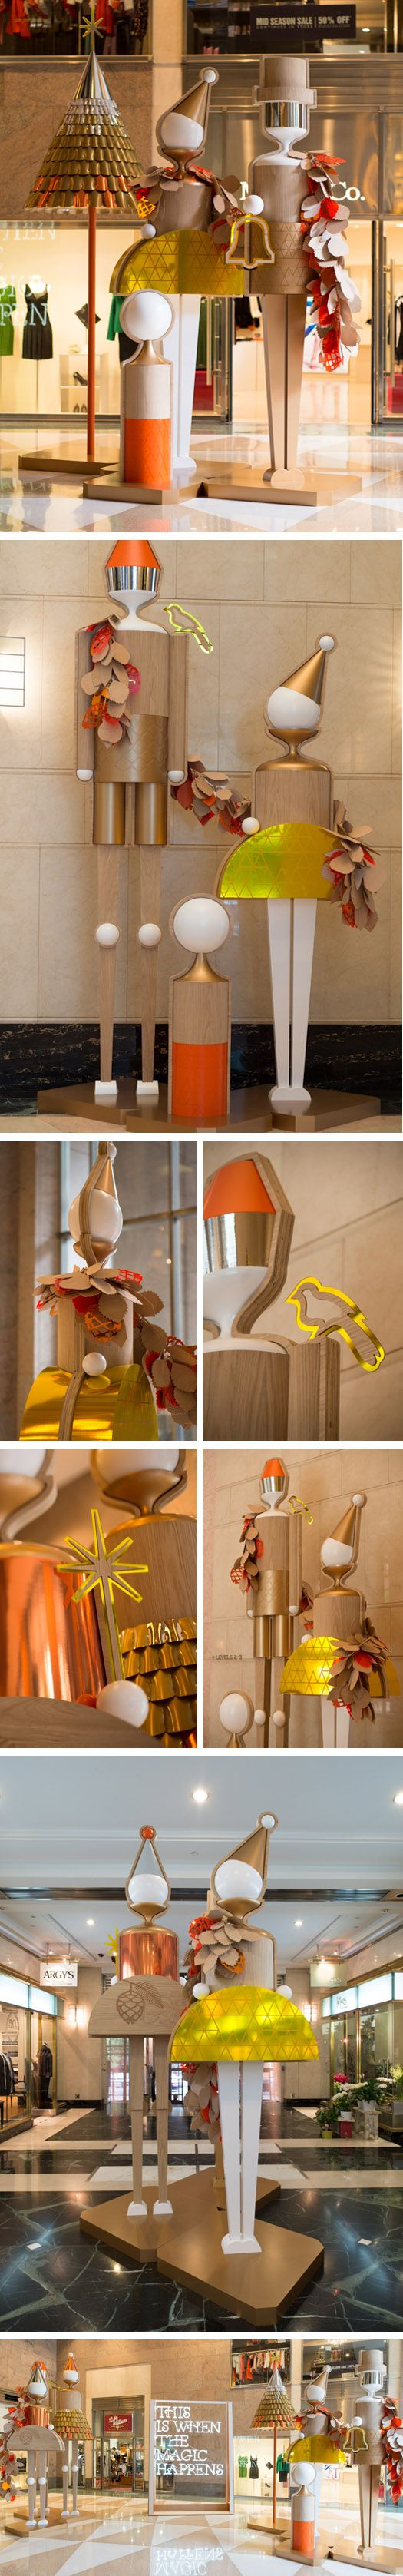 """""""This is when the magic happens"""" designed by Fabio Onorato Design"""